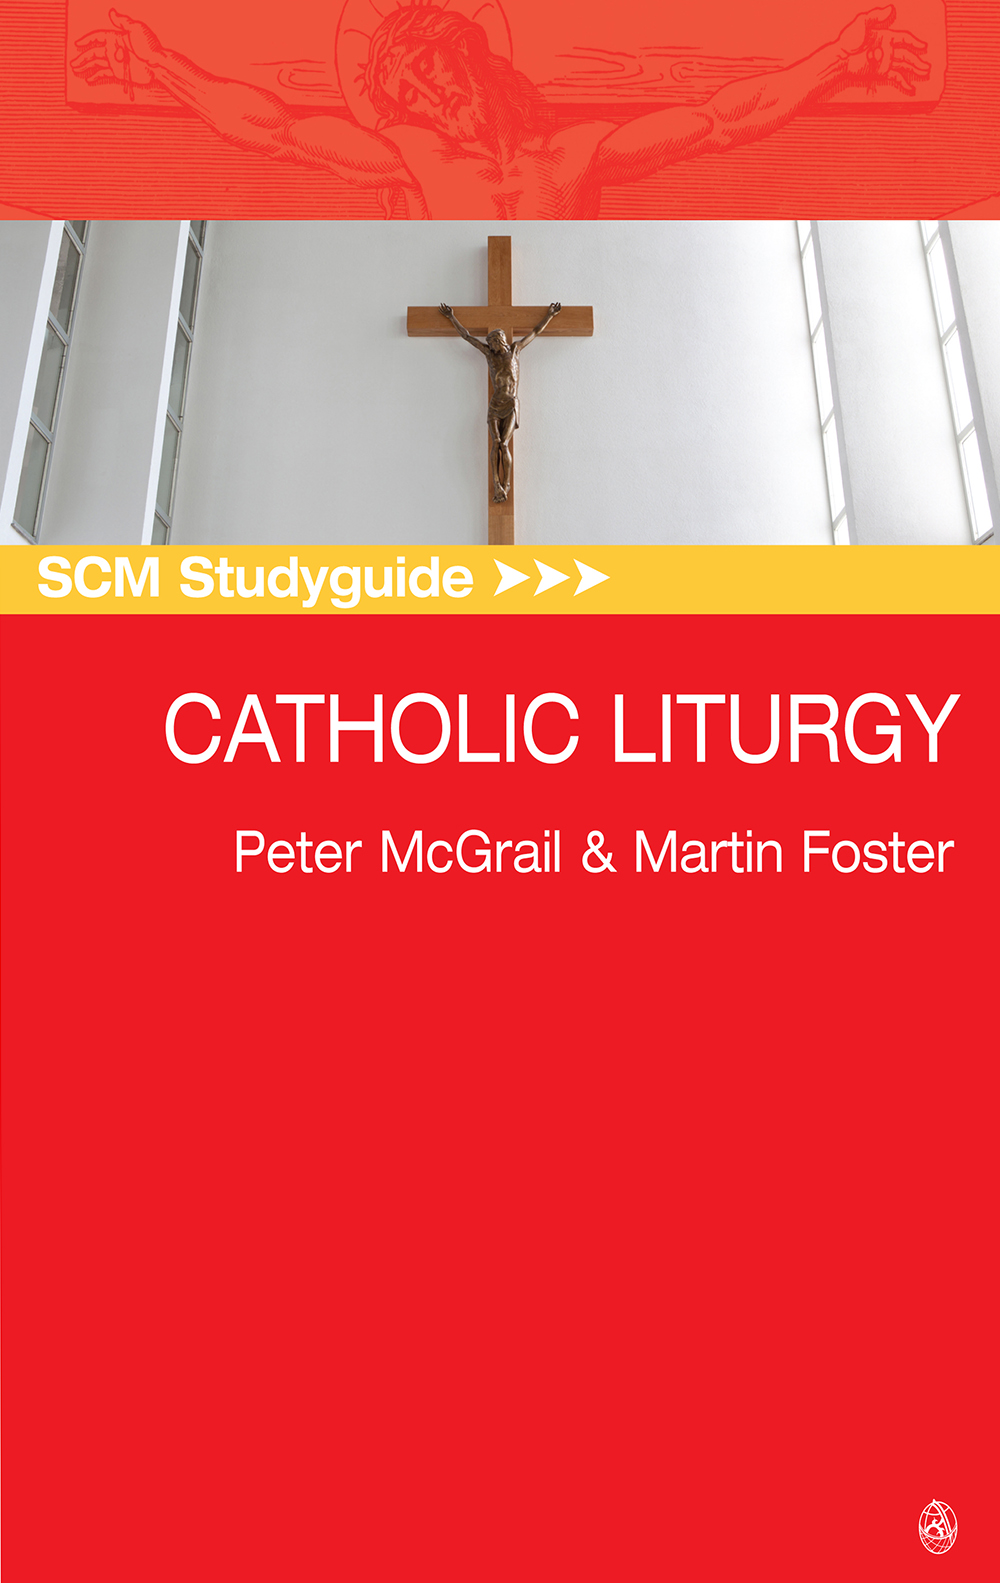 SCM Study guide to Catholic Liturgy